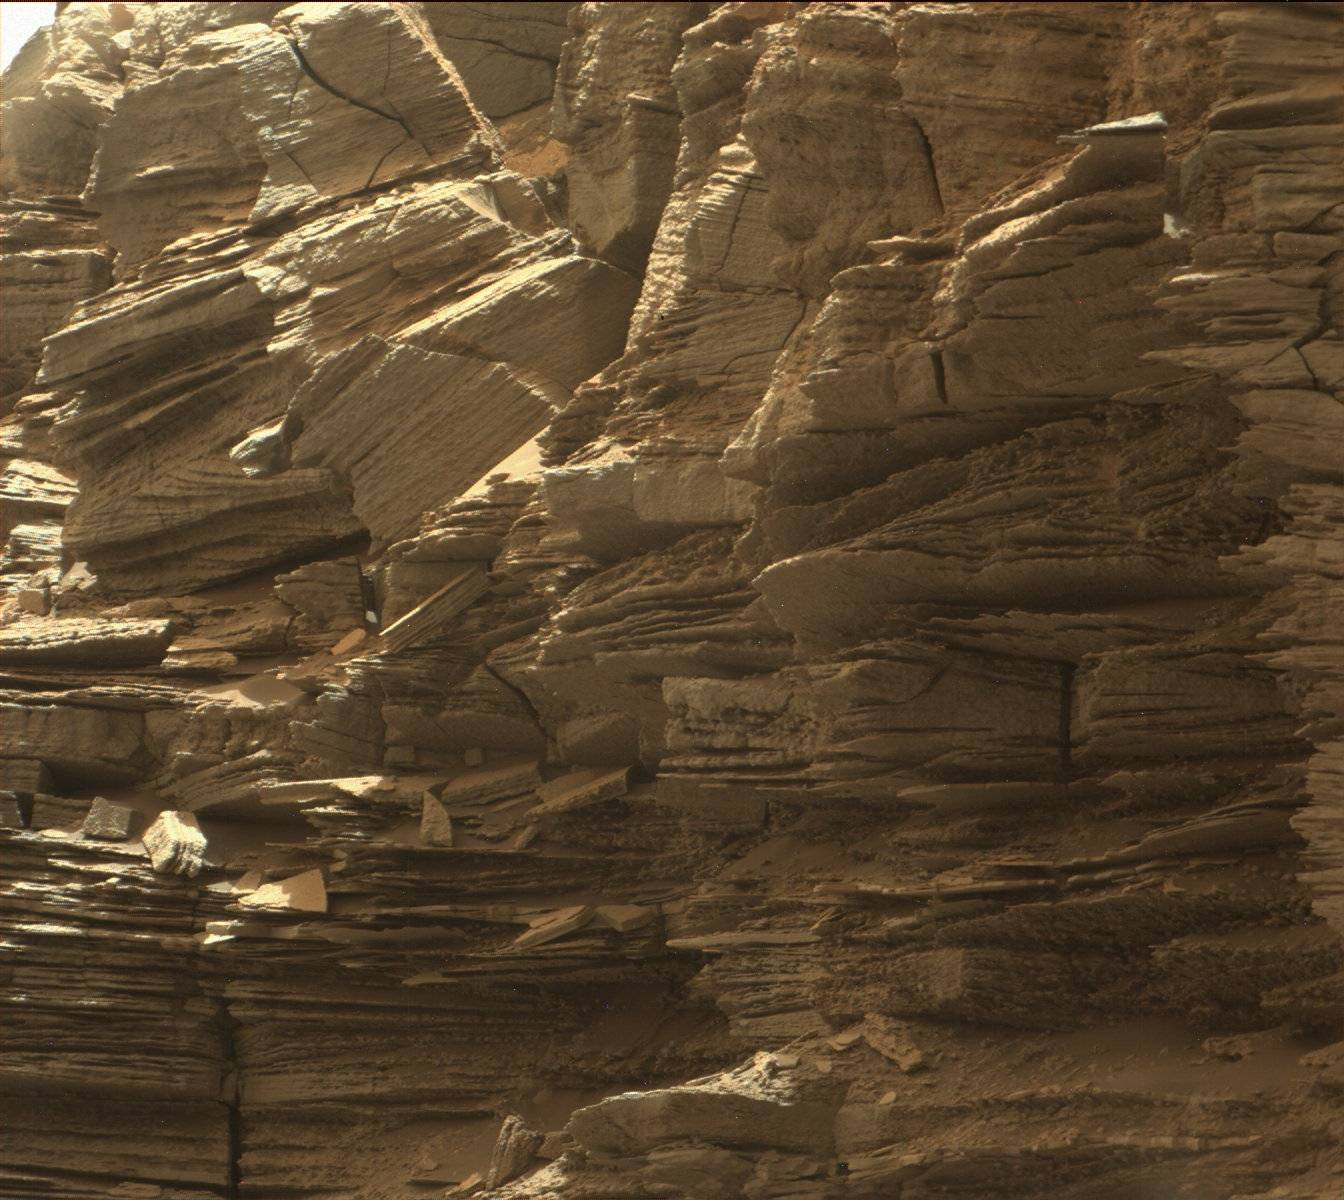 NASA's Mars Rover Just Took Some Amazing Pictures Of The ...